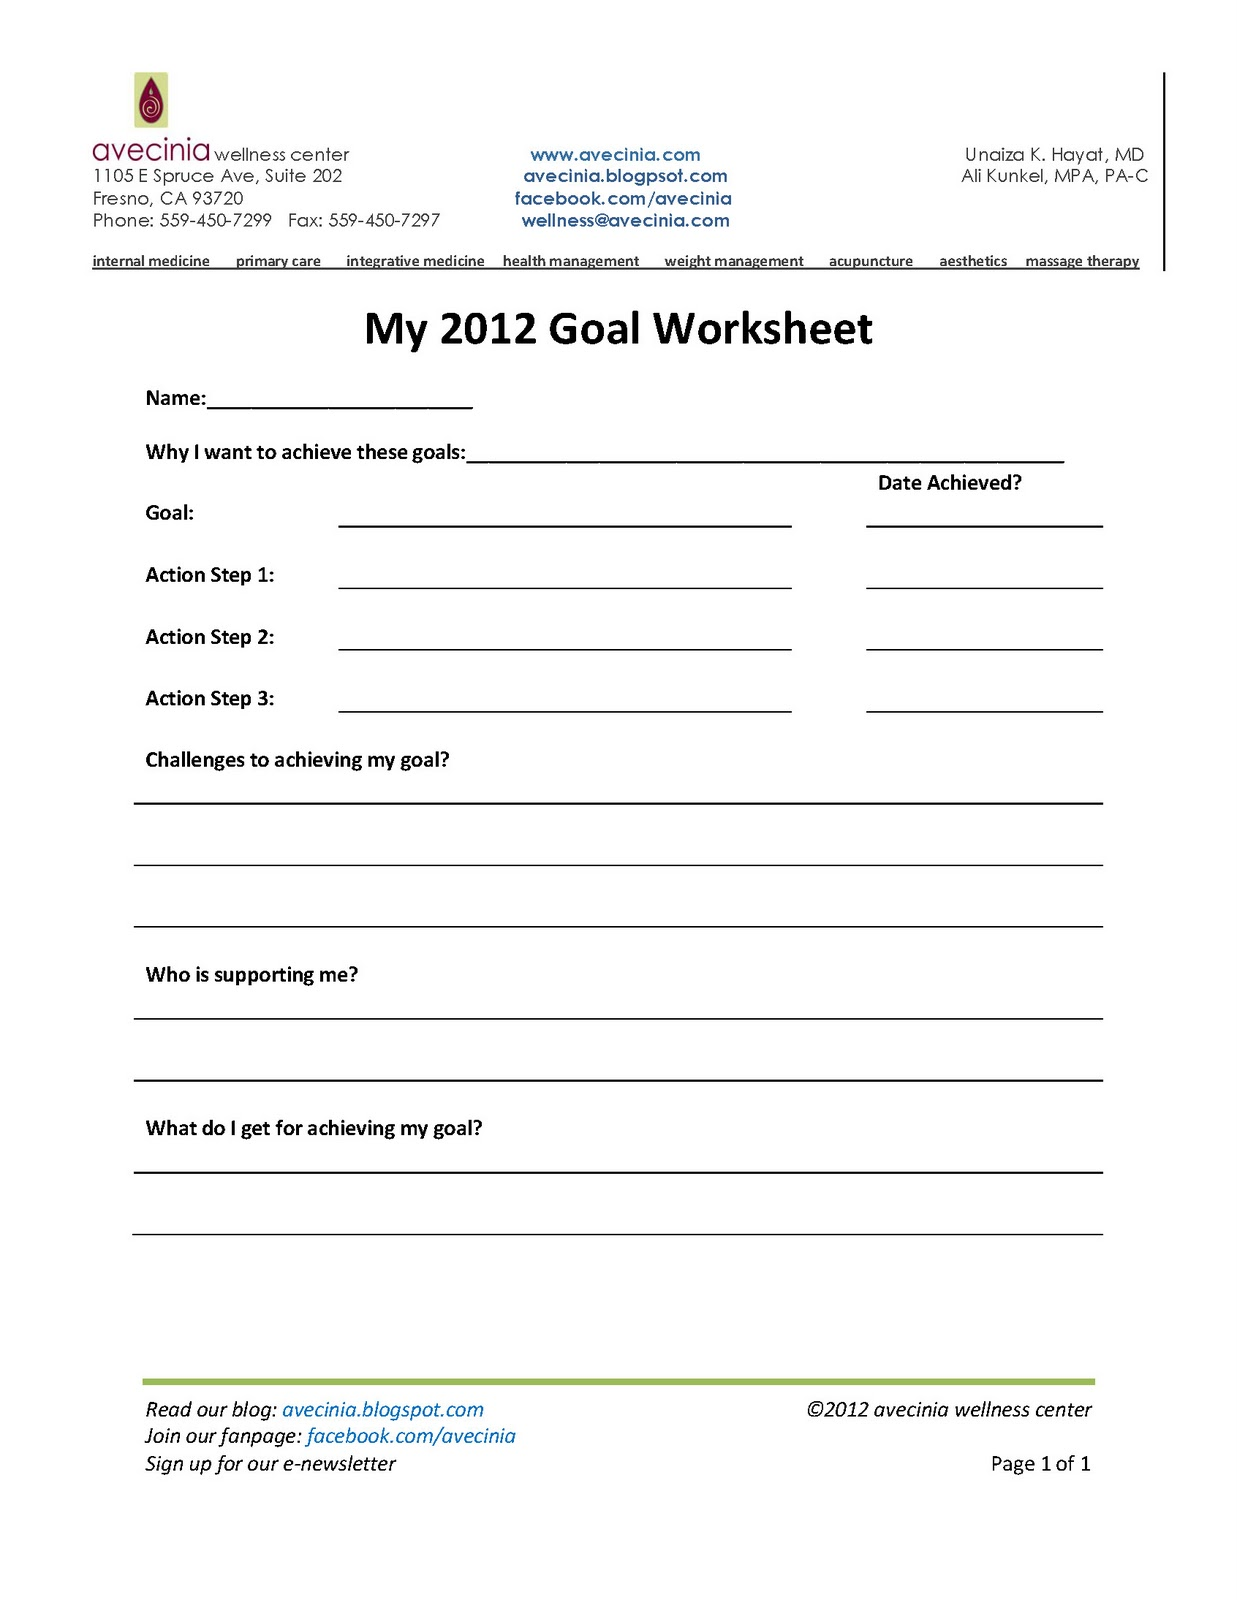 Worksheets Health And Wellness Worksheets to charge of health and wellness worksheets today it difficult groups pinterest worksheets